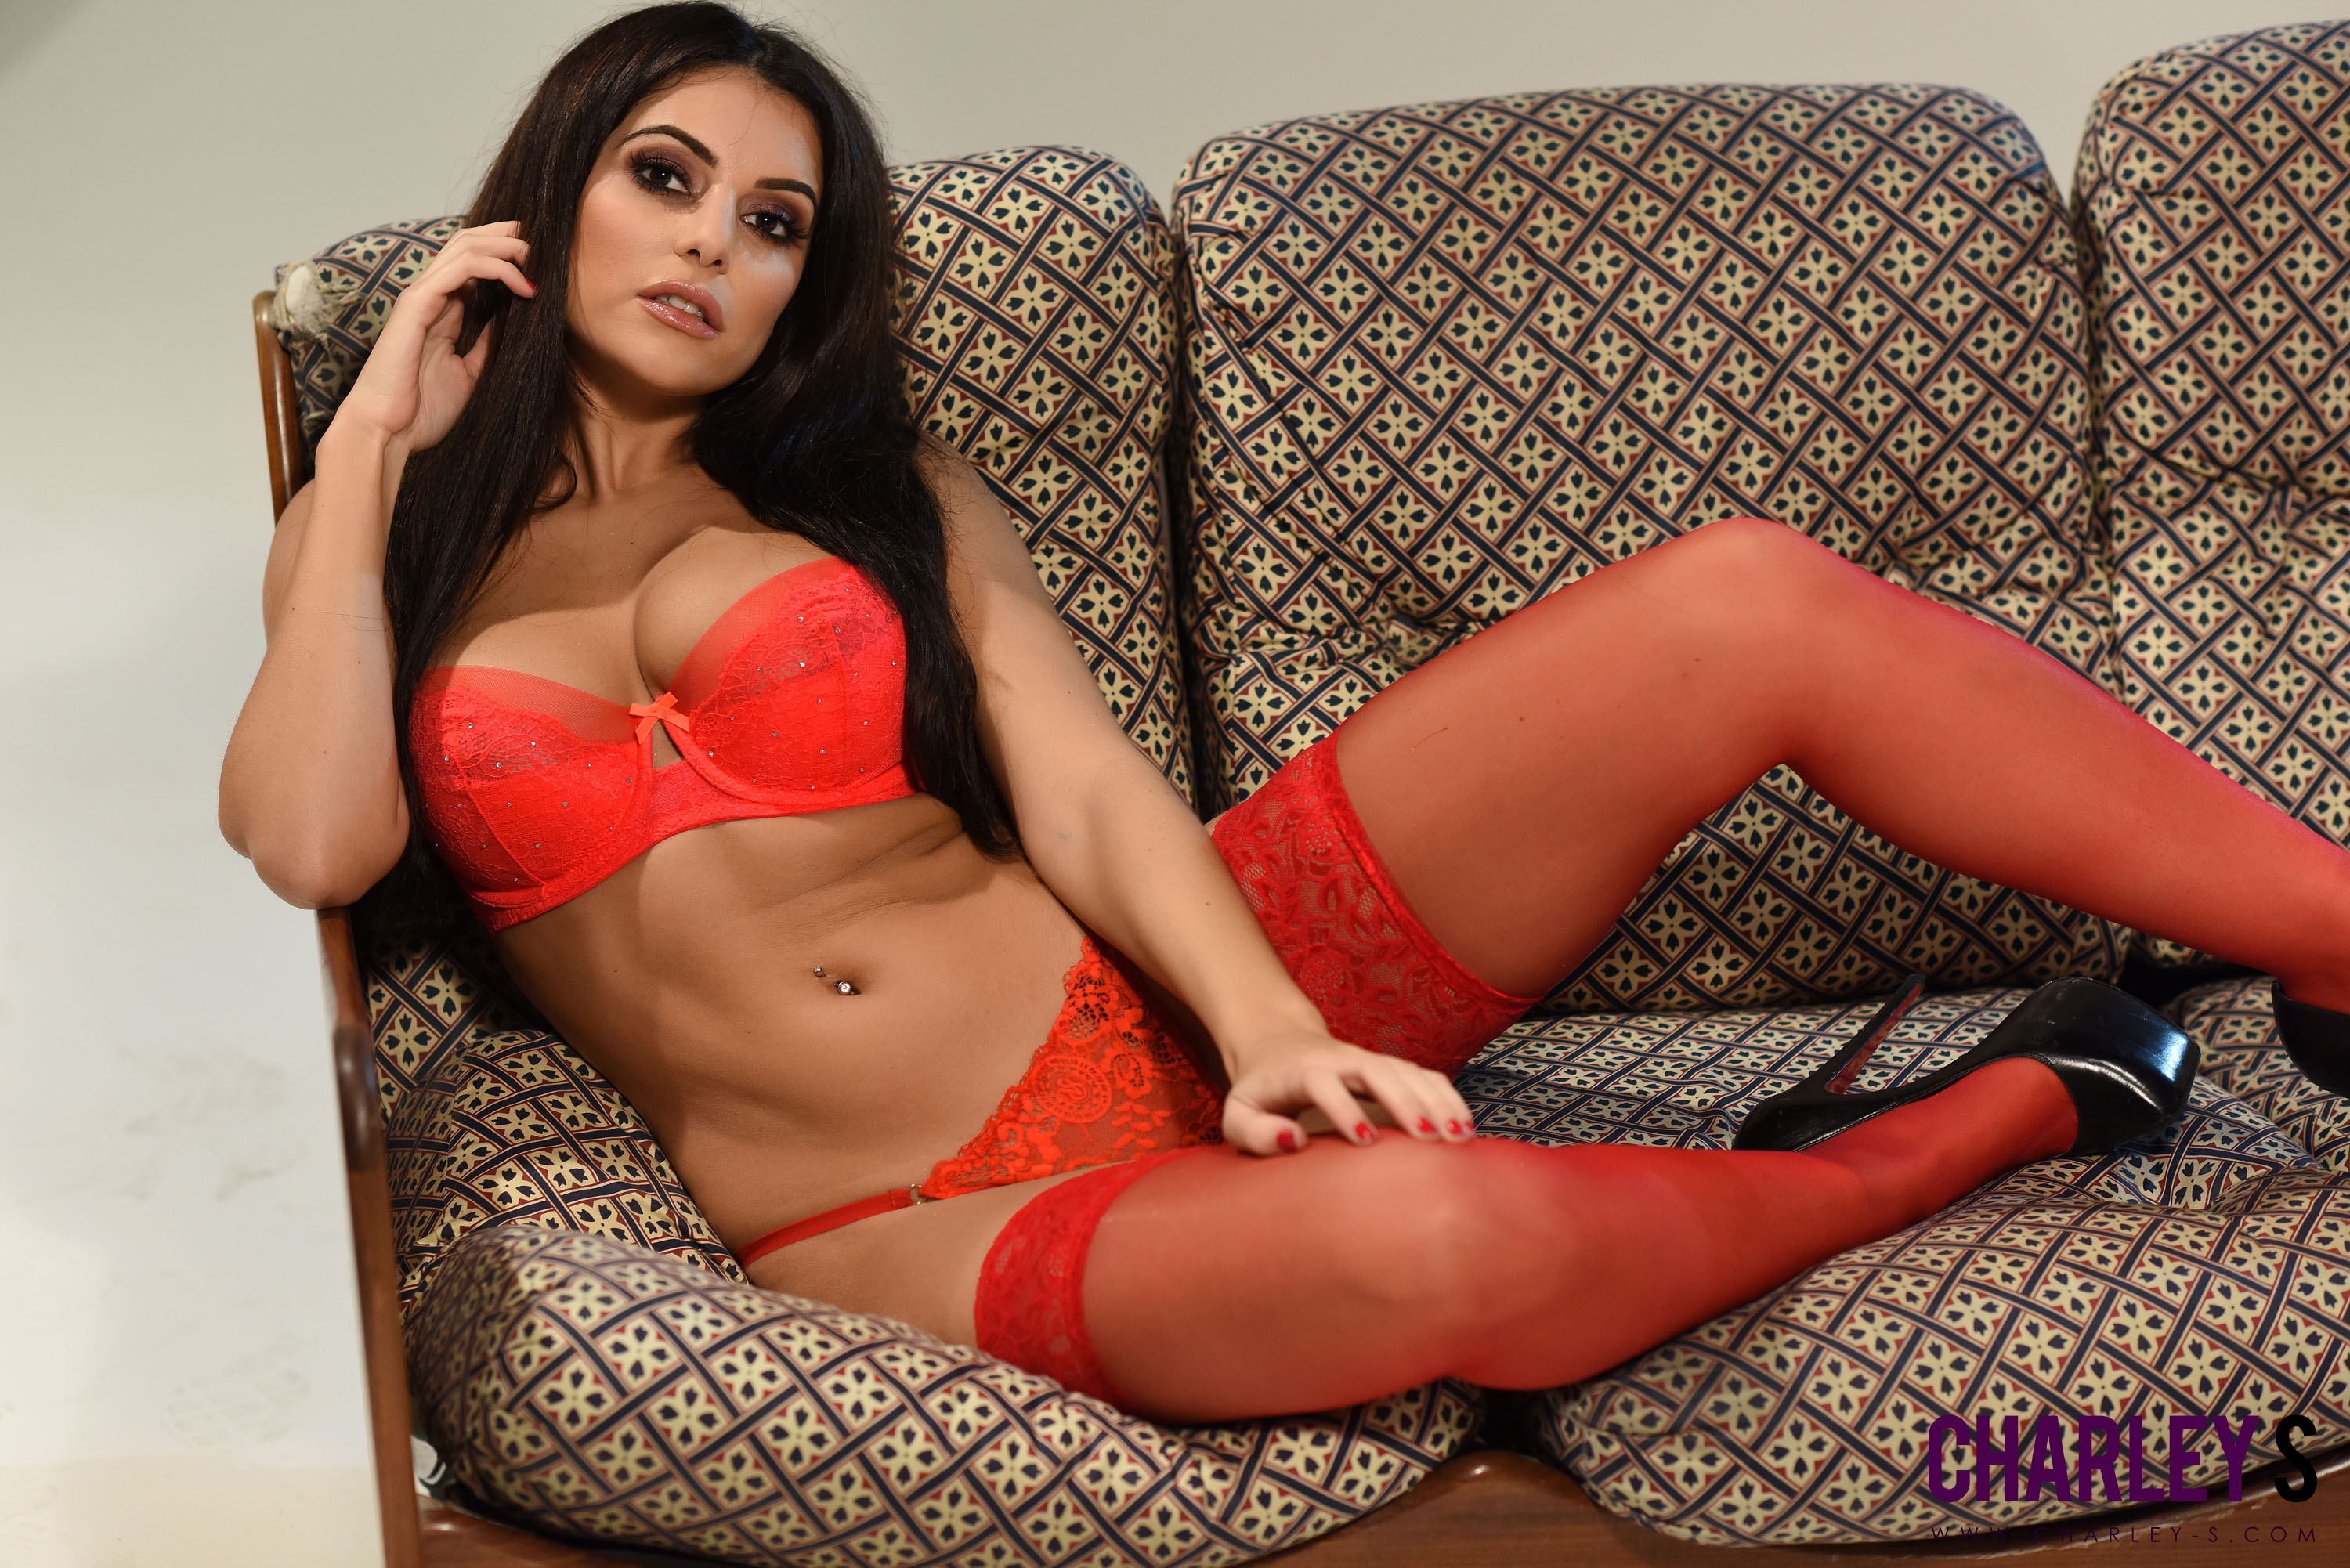 Centerfold looks stunning in her red panties, bra and stockings